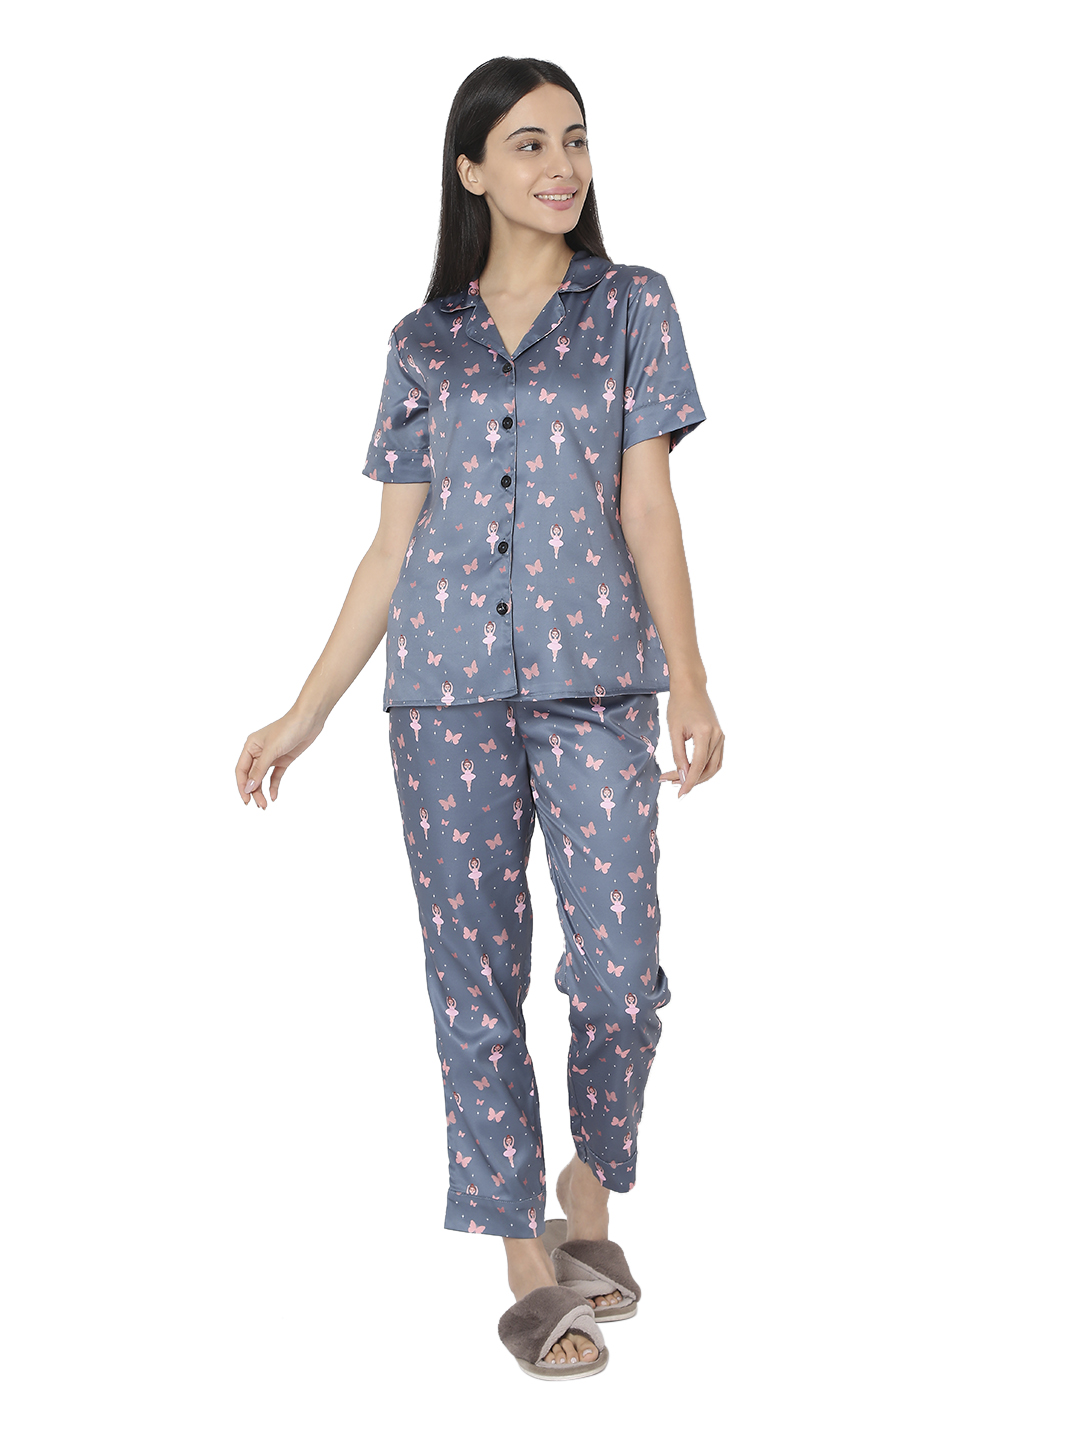 Smarty Pants   Smarty Pants women's silk satin grey color butterfly & dancing doll print night suit.